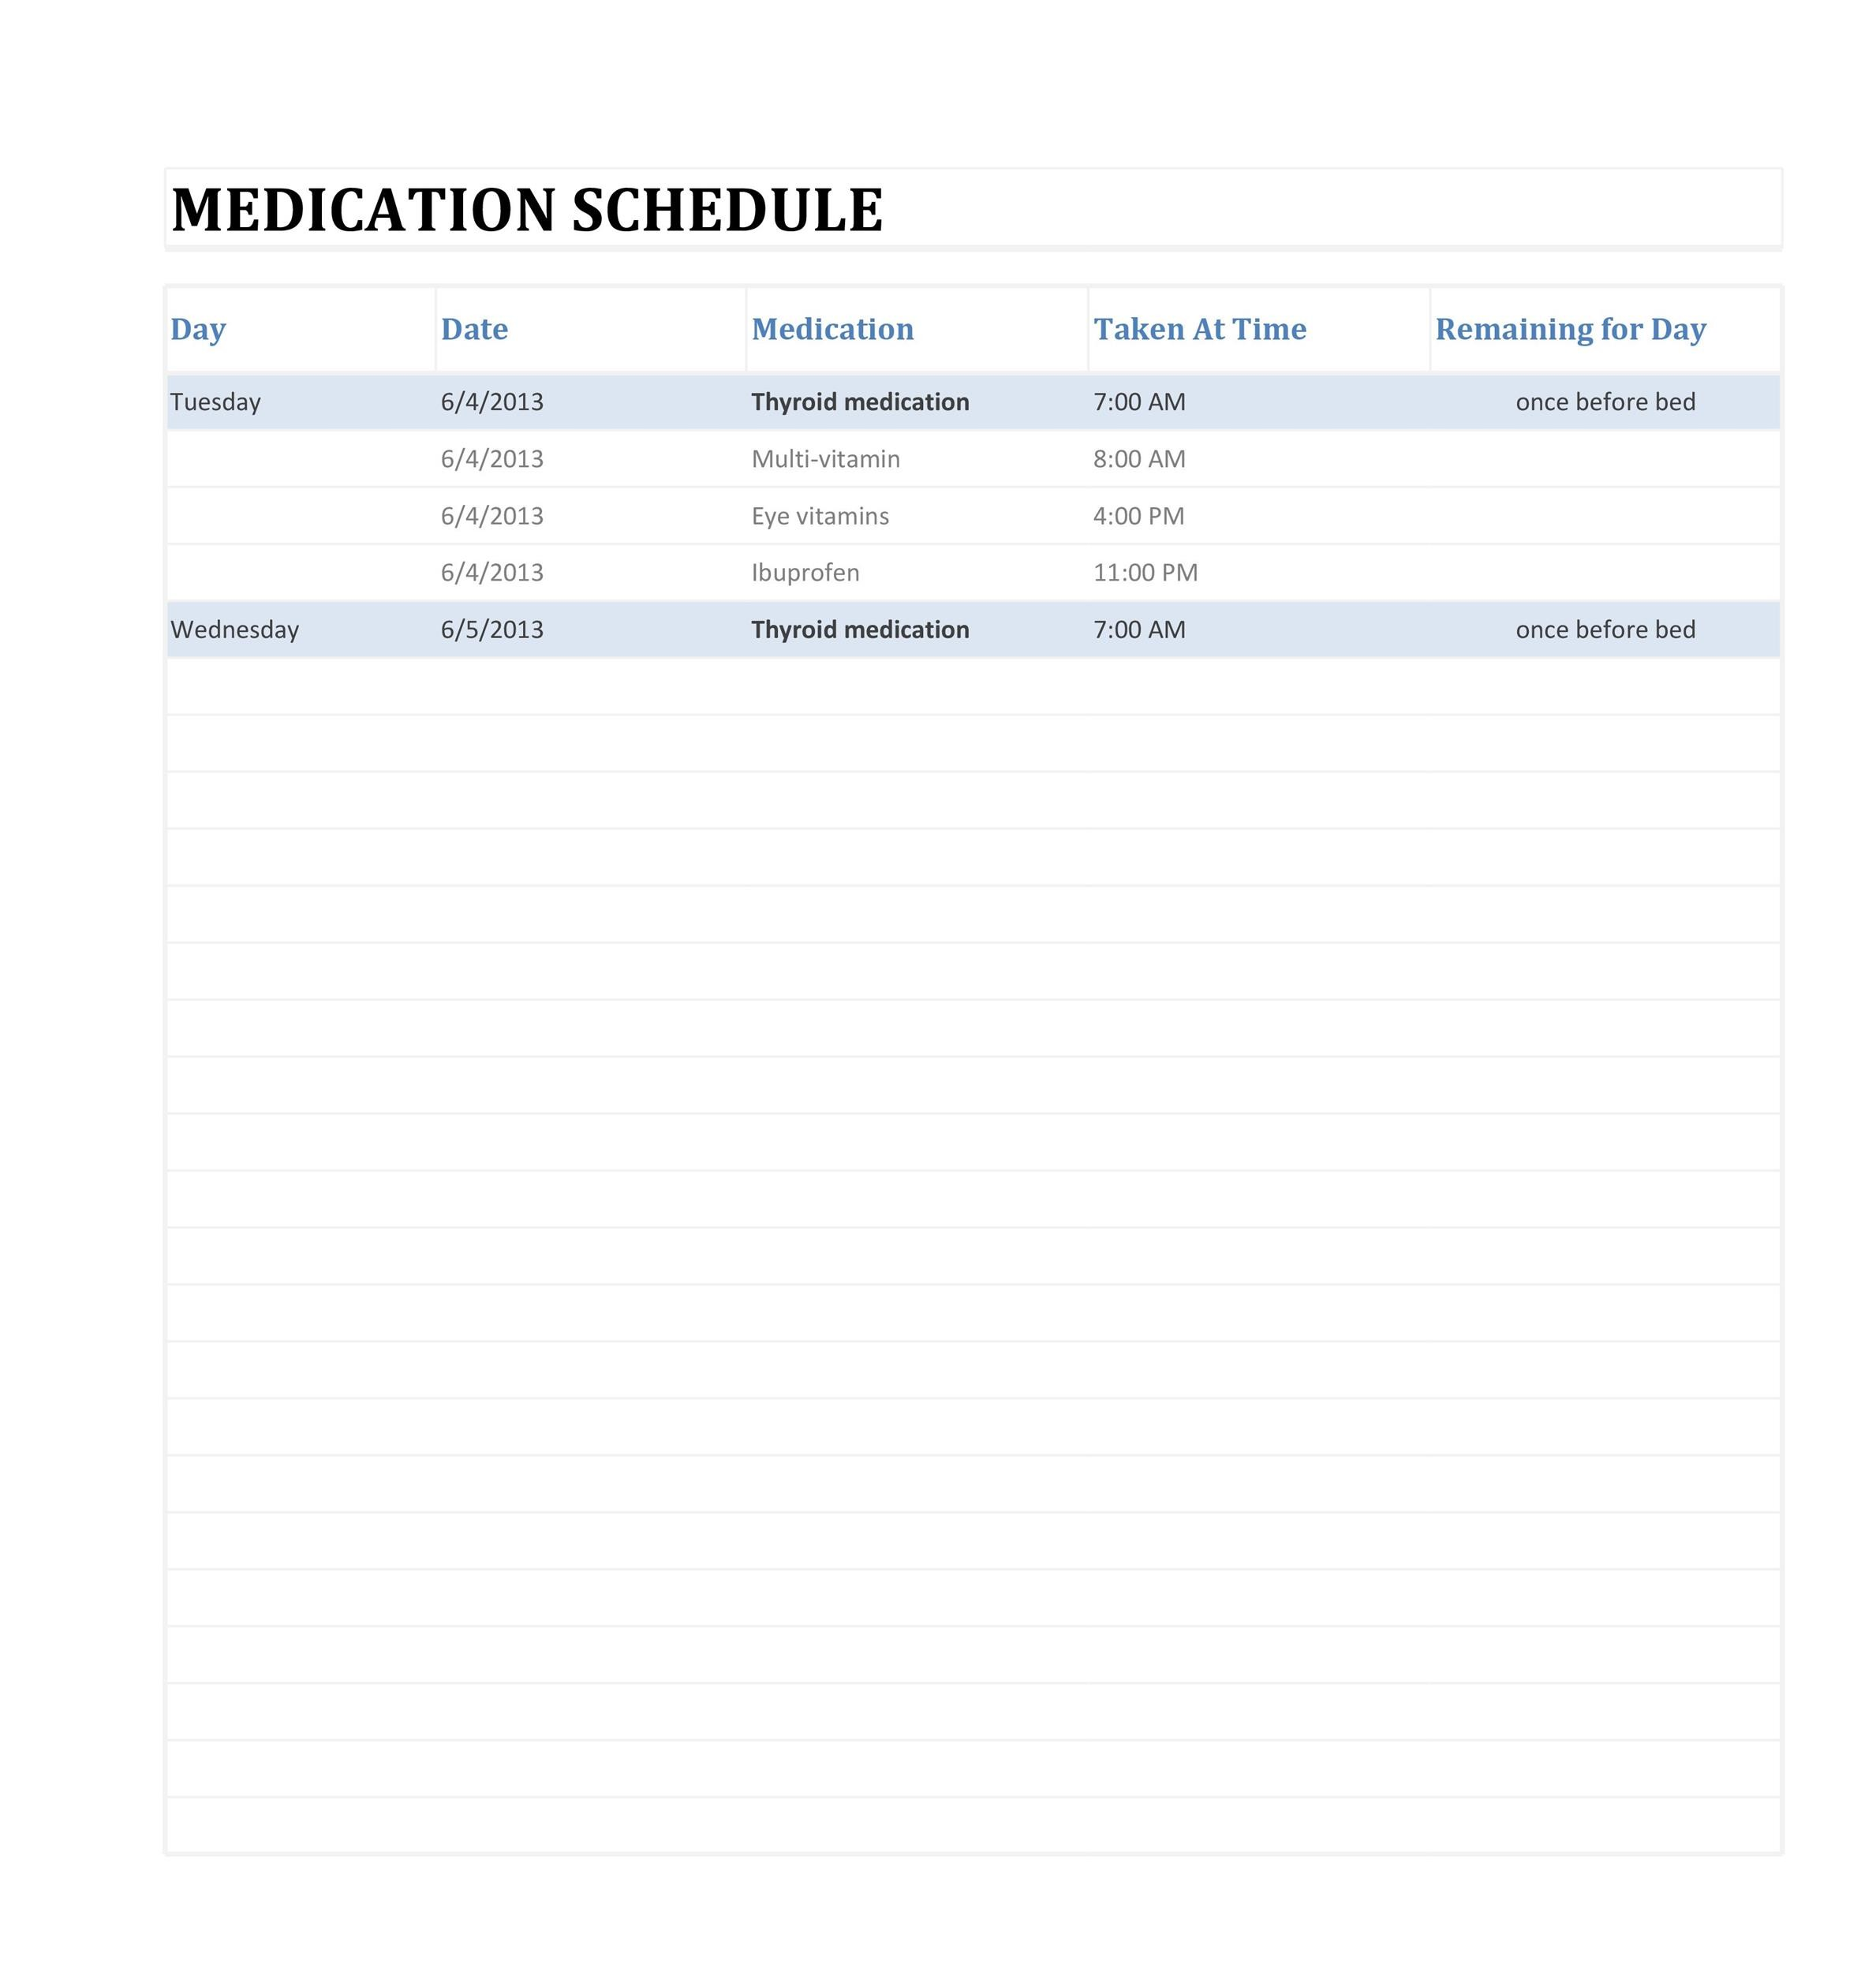 Free medication schedule template 02